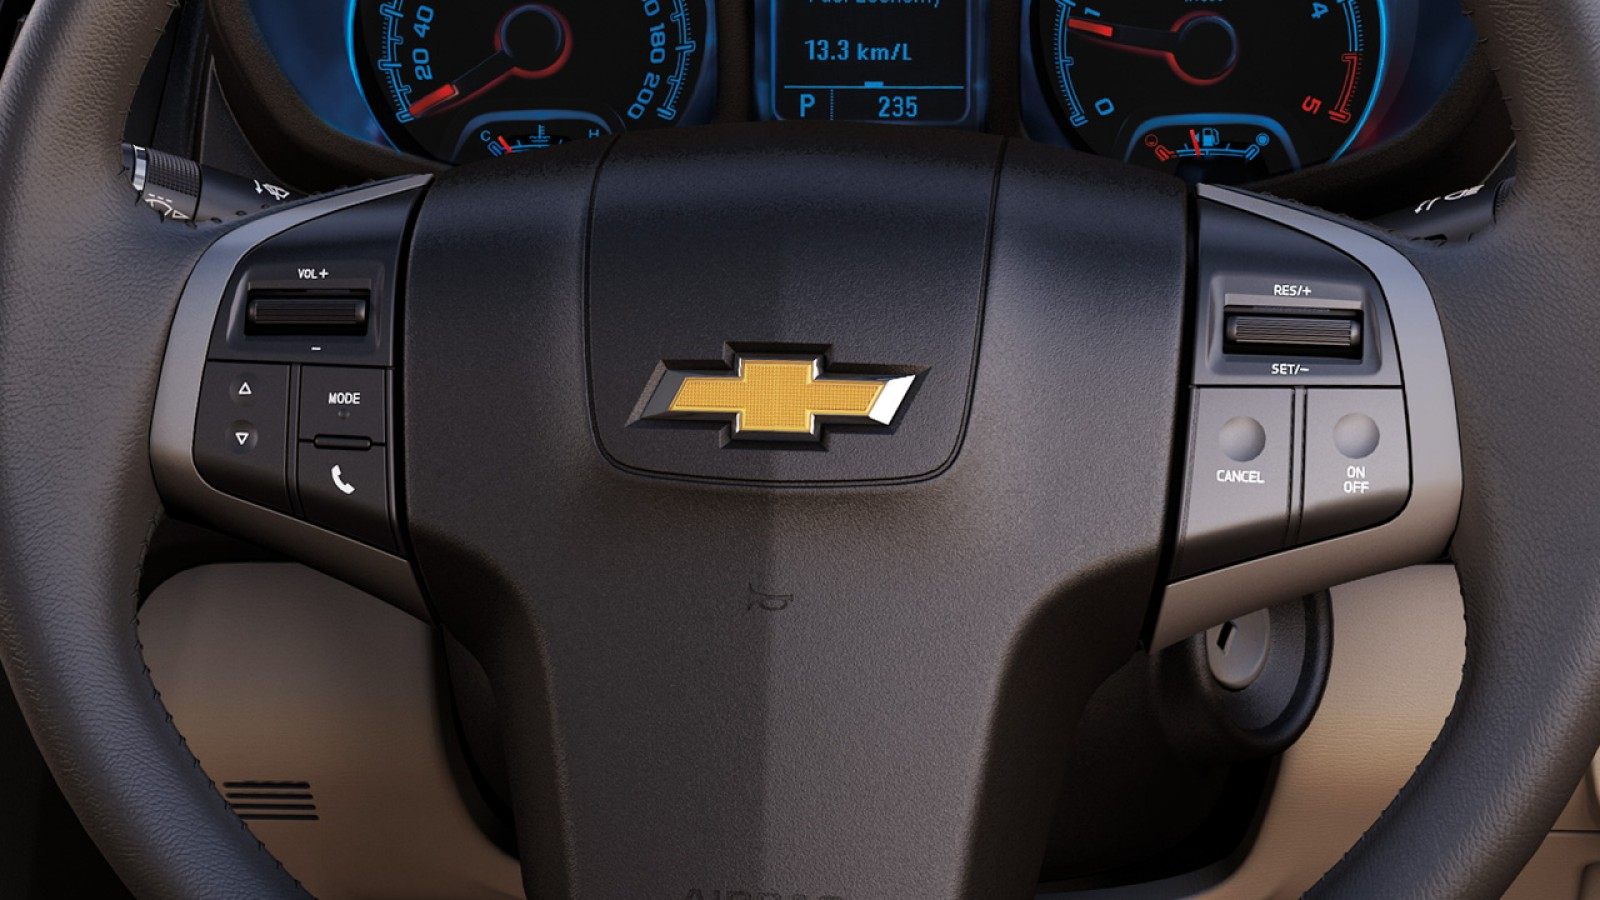 2014 Chevrolet Colorado Launched In Thailand U2013 New Duramax 2 Engine, New 6  M/